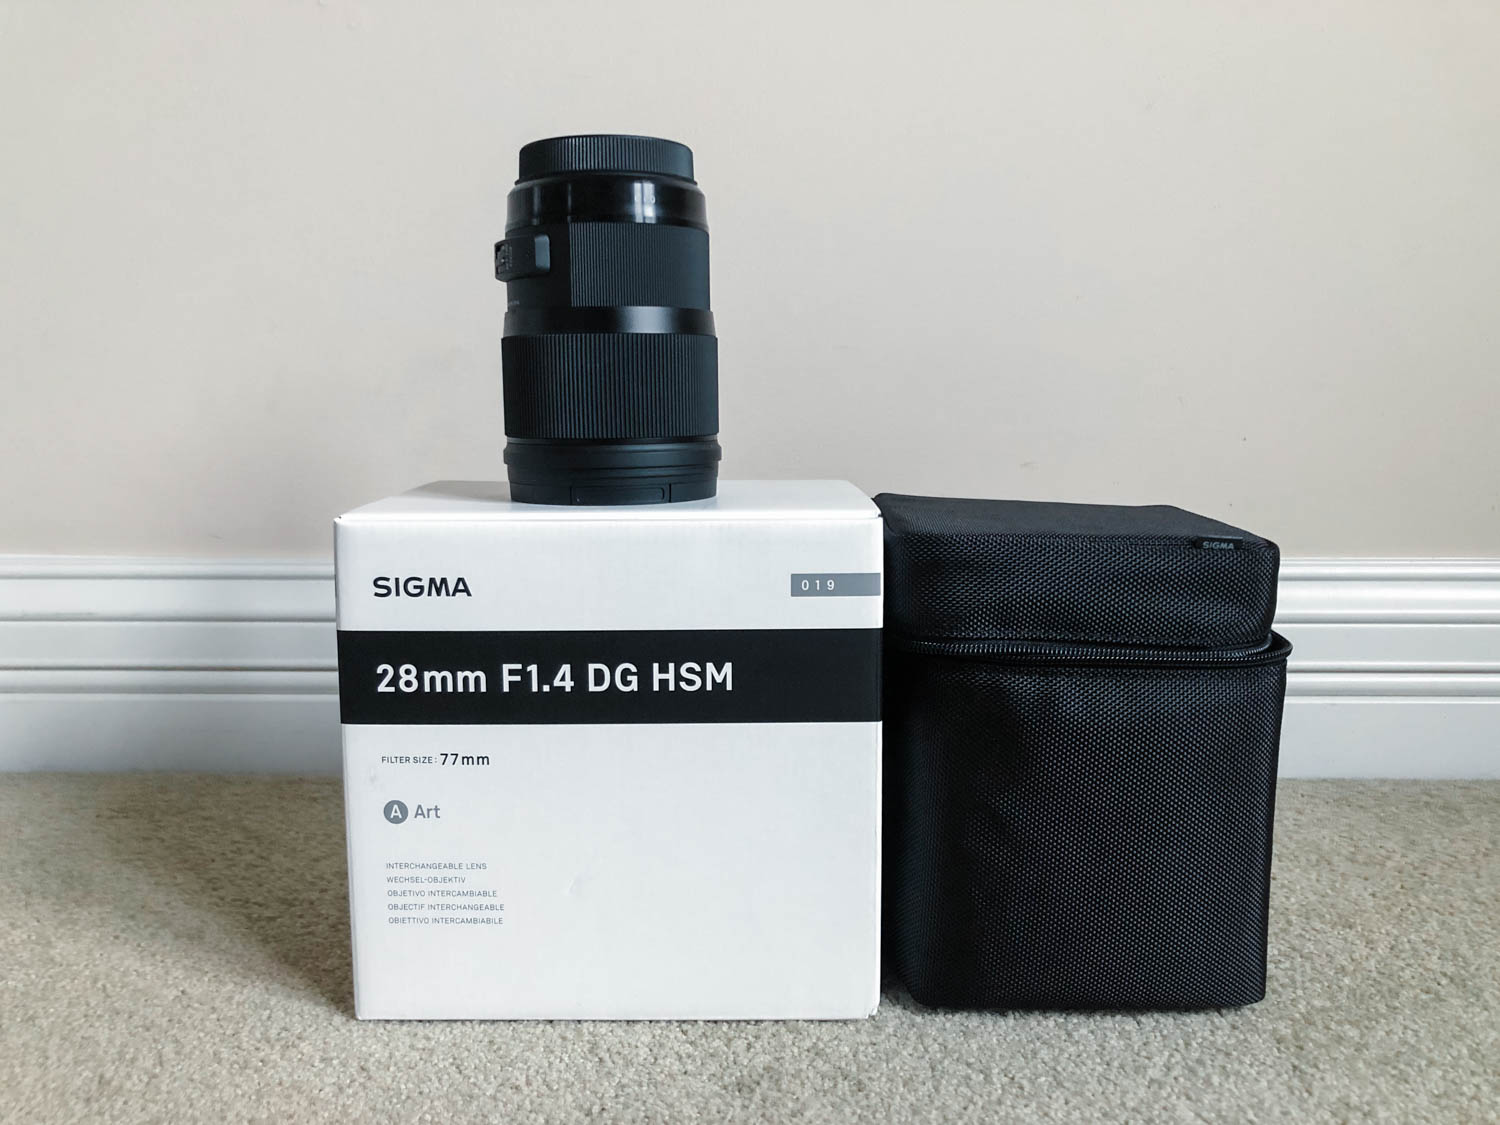 https://i0.wp.com/digital-photography-school.com/wp-content/uploads/2019/02/Karthika-Gupta-Photography-Sigma-28mm-f1.4-review-2.jpg?resize=1500%2C1125&ssl=1